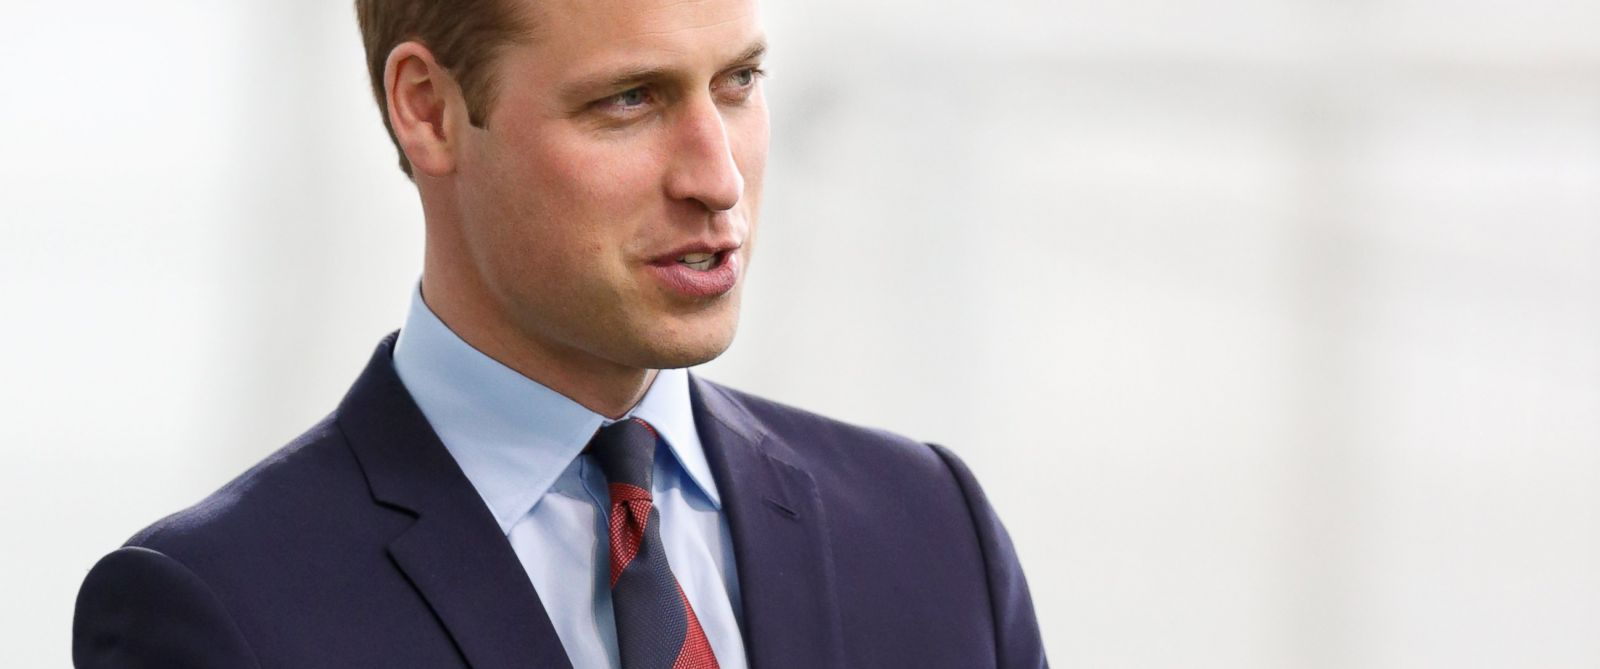 gty_prince_william_kb_150528_12x5_1600